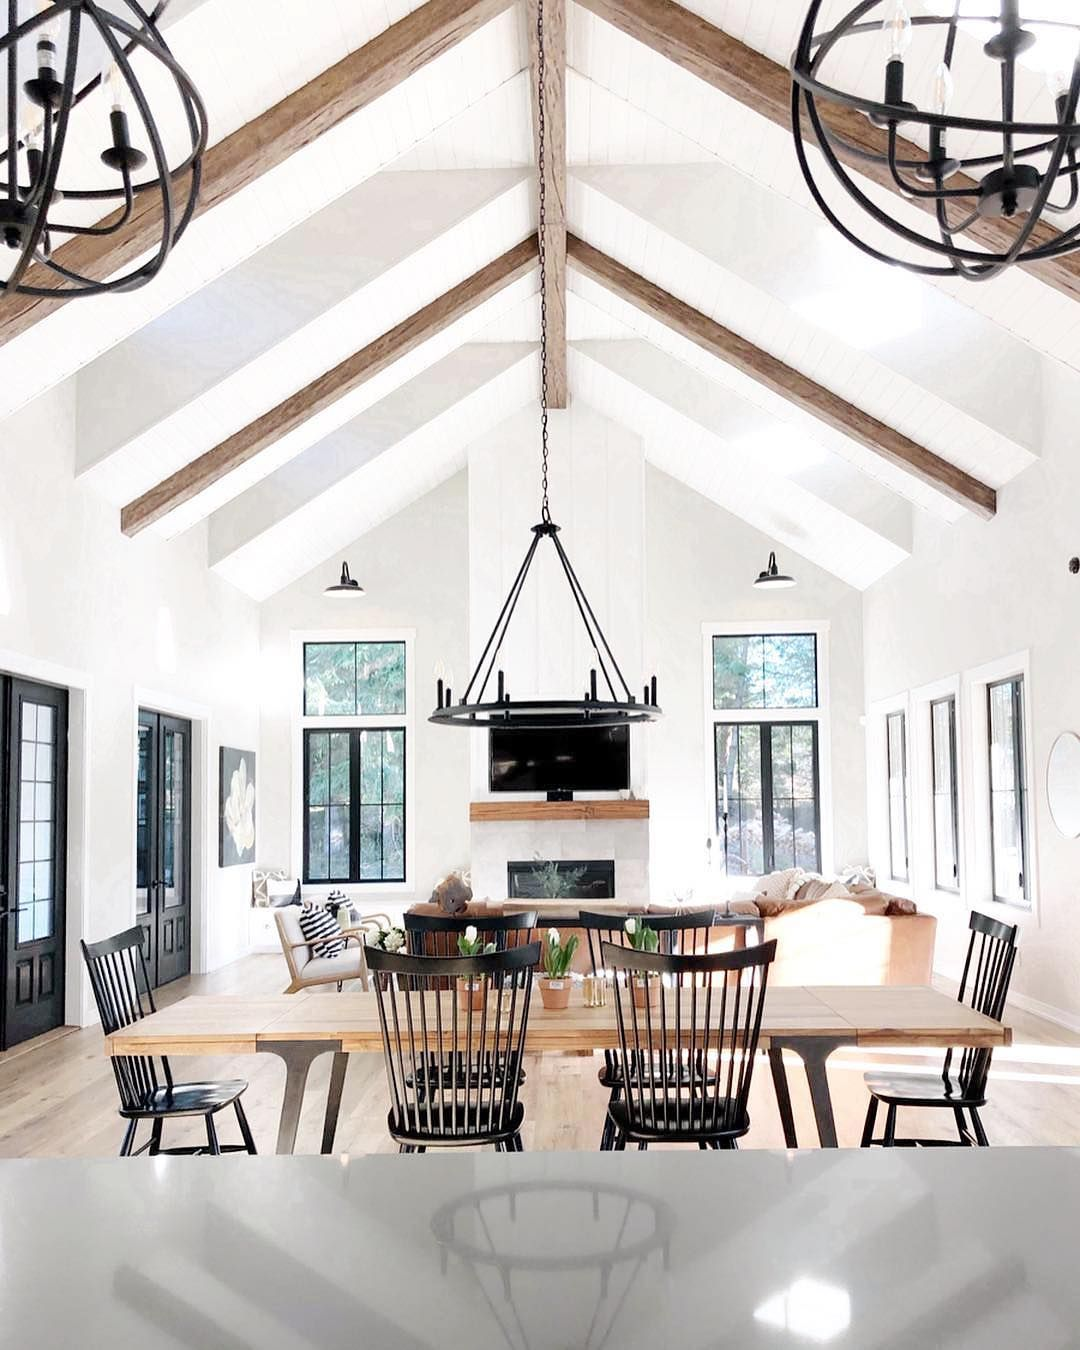 The Gula Shop On Instagram This Is Literally My Dream Modern Farmhouse Such A Beau Farm House Living Room Build Your Own House Cathedral Ceiling Living Room